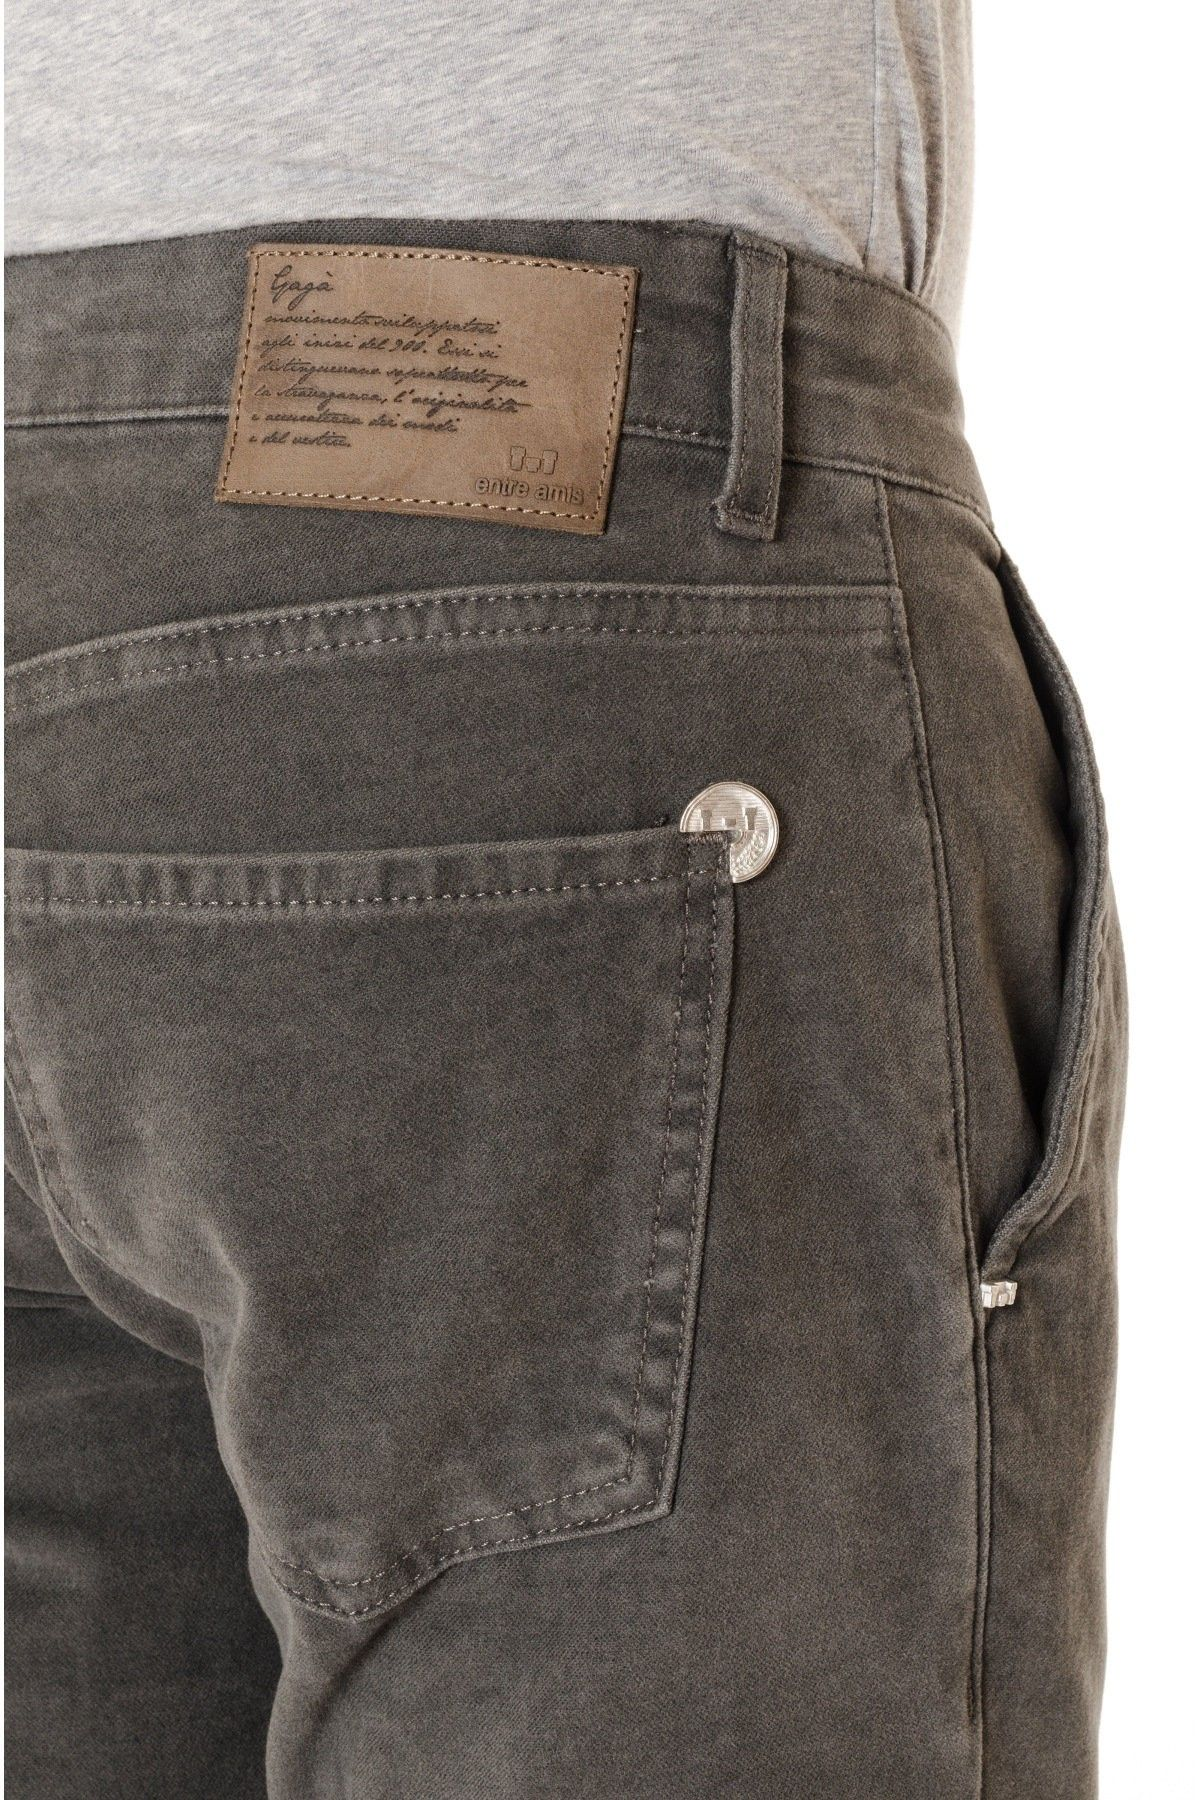 Gray trousers ENTRE AMIS for men F/W 16-17 - Rione Fontana